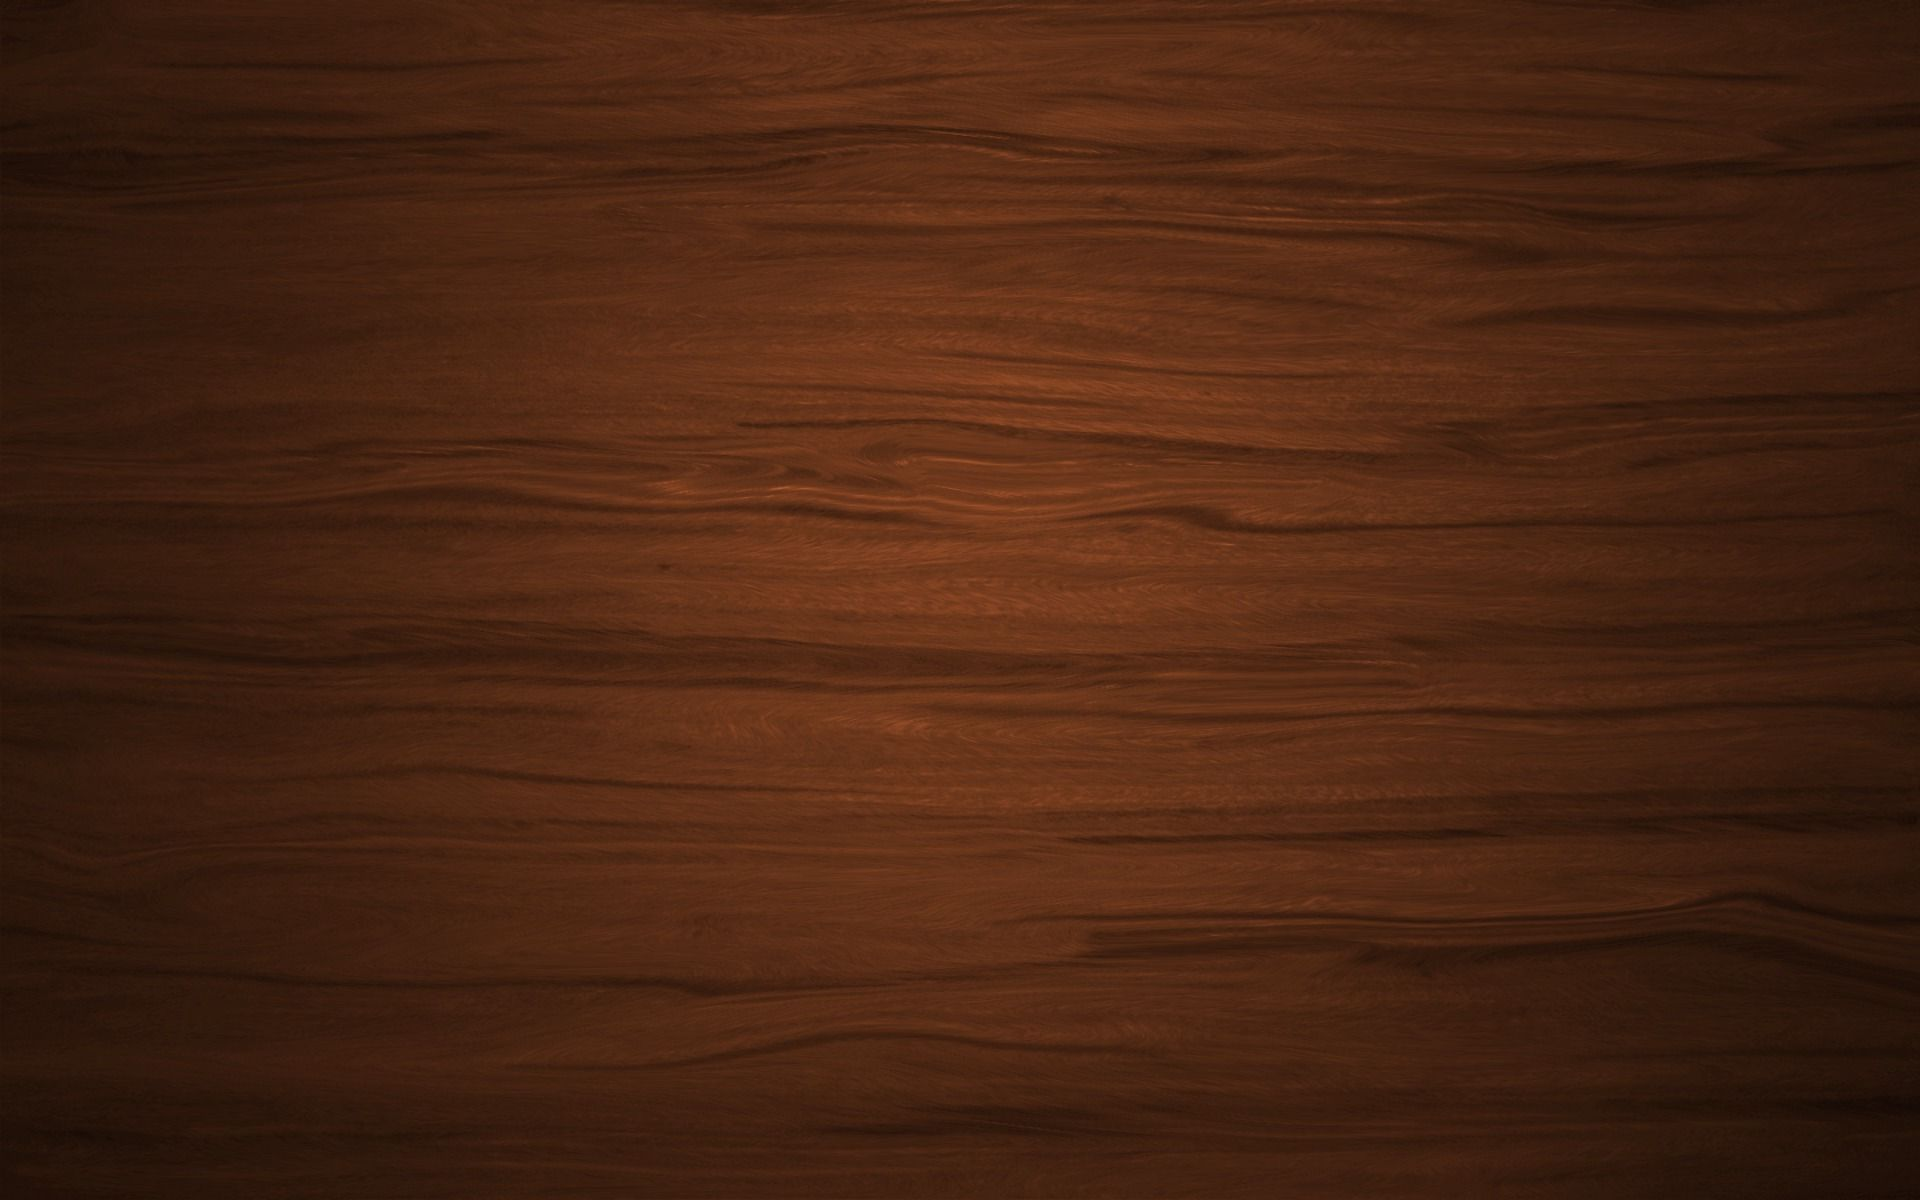 Wood texture wallpaper wallpapersafari for Wallpaper used in your home in their hands